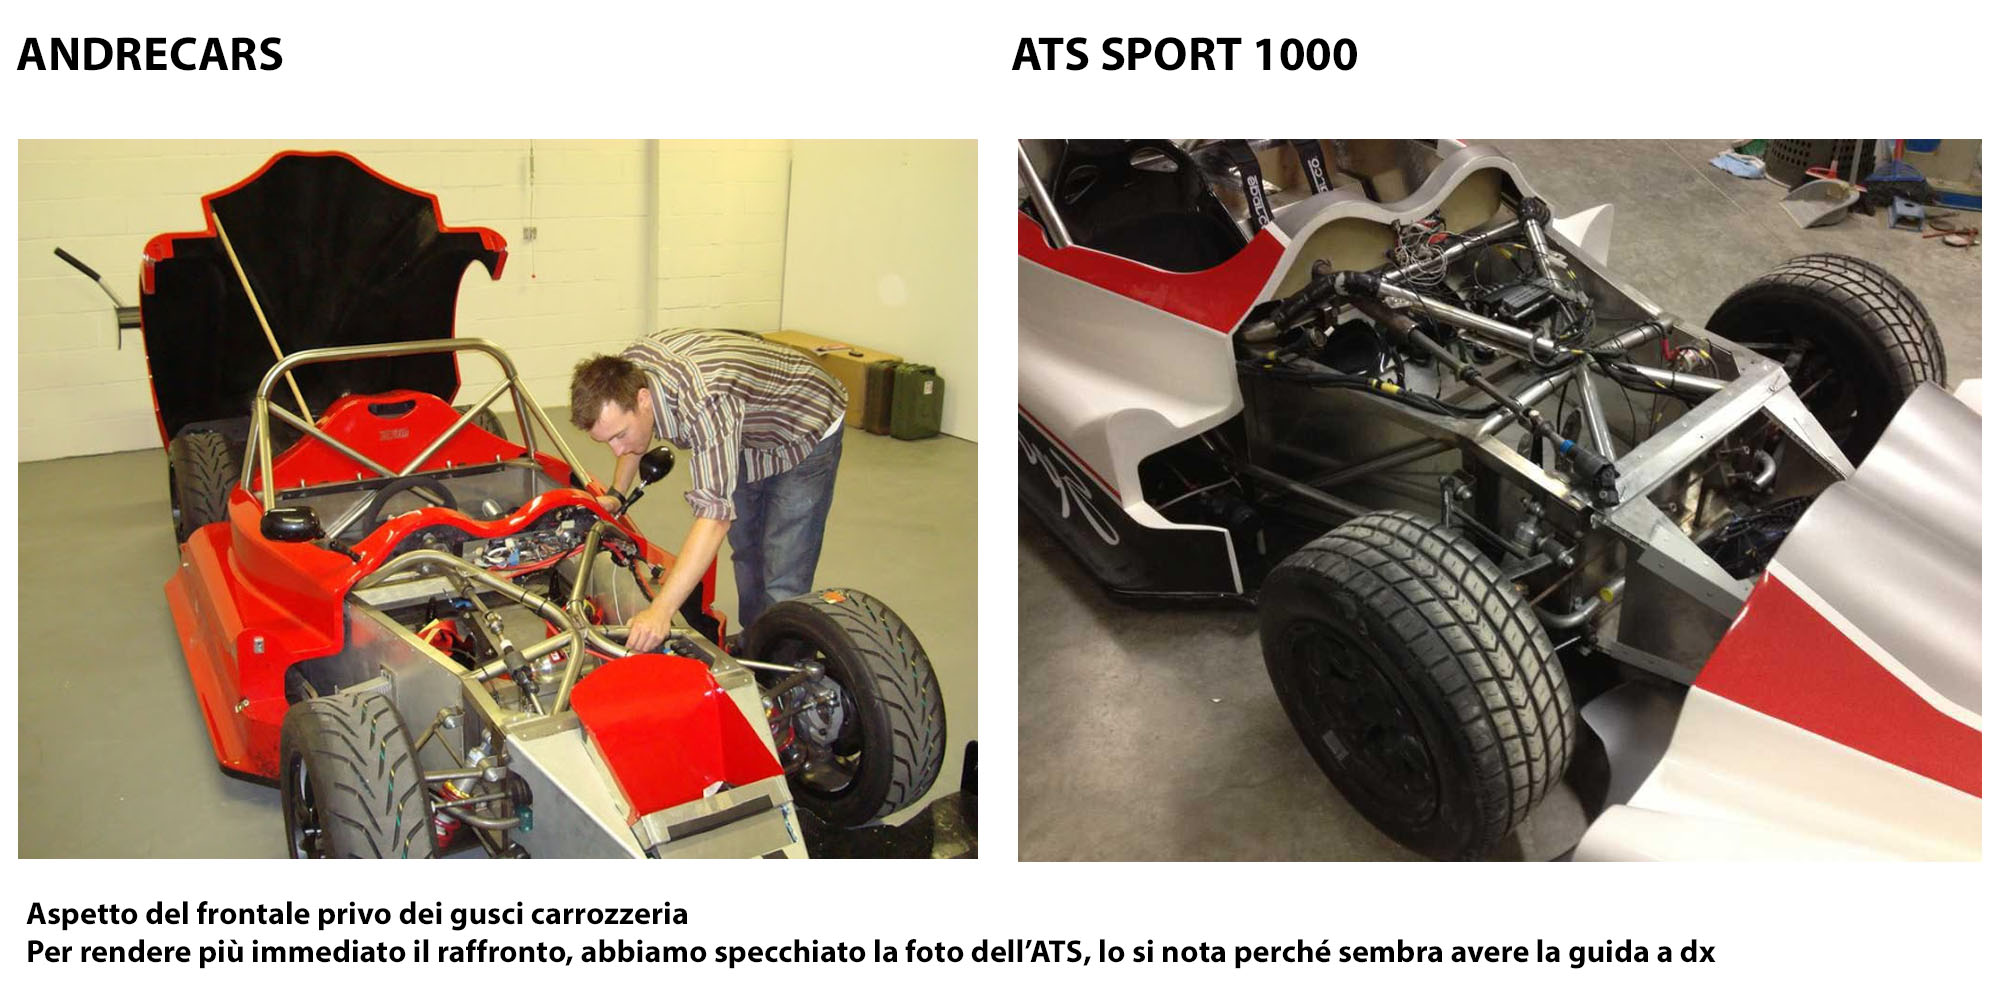 frontale andrecars ats sport 1000 track fever. Black Bedroom Furniture Sets. Home Design Ideas